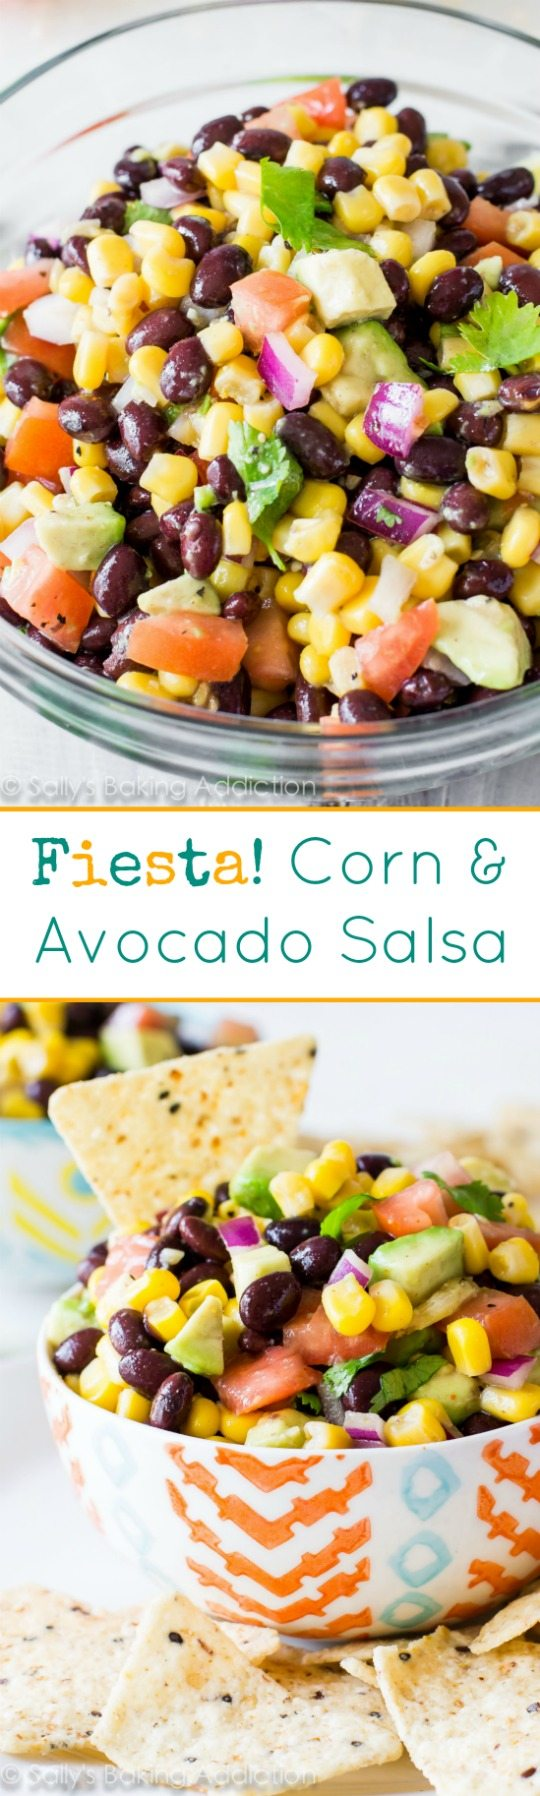 Corn And Avocado Salsa Recipe — Dishmaps